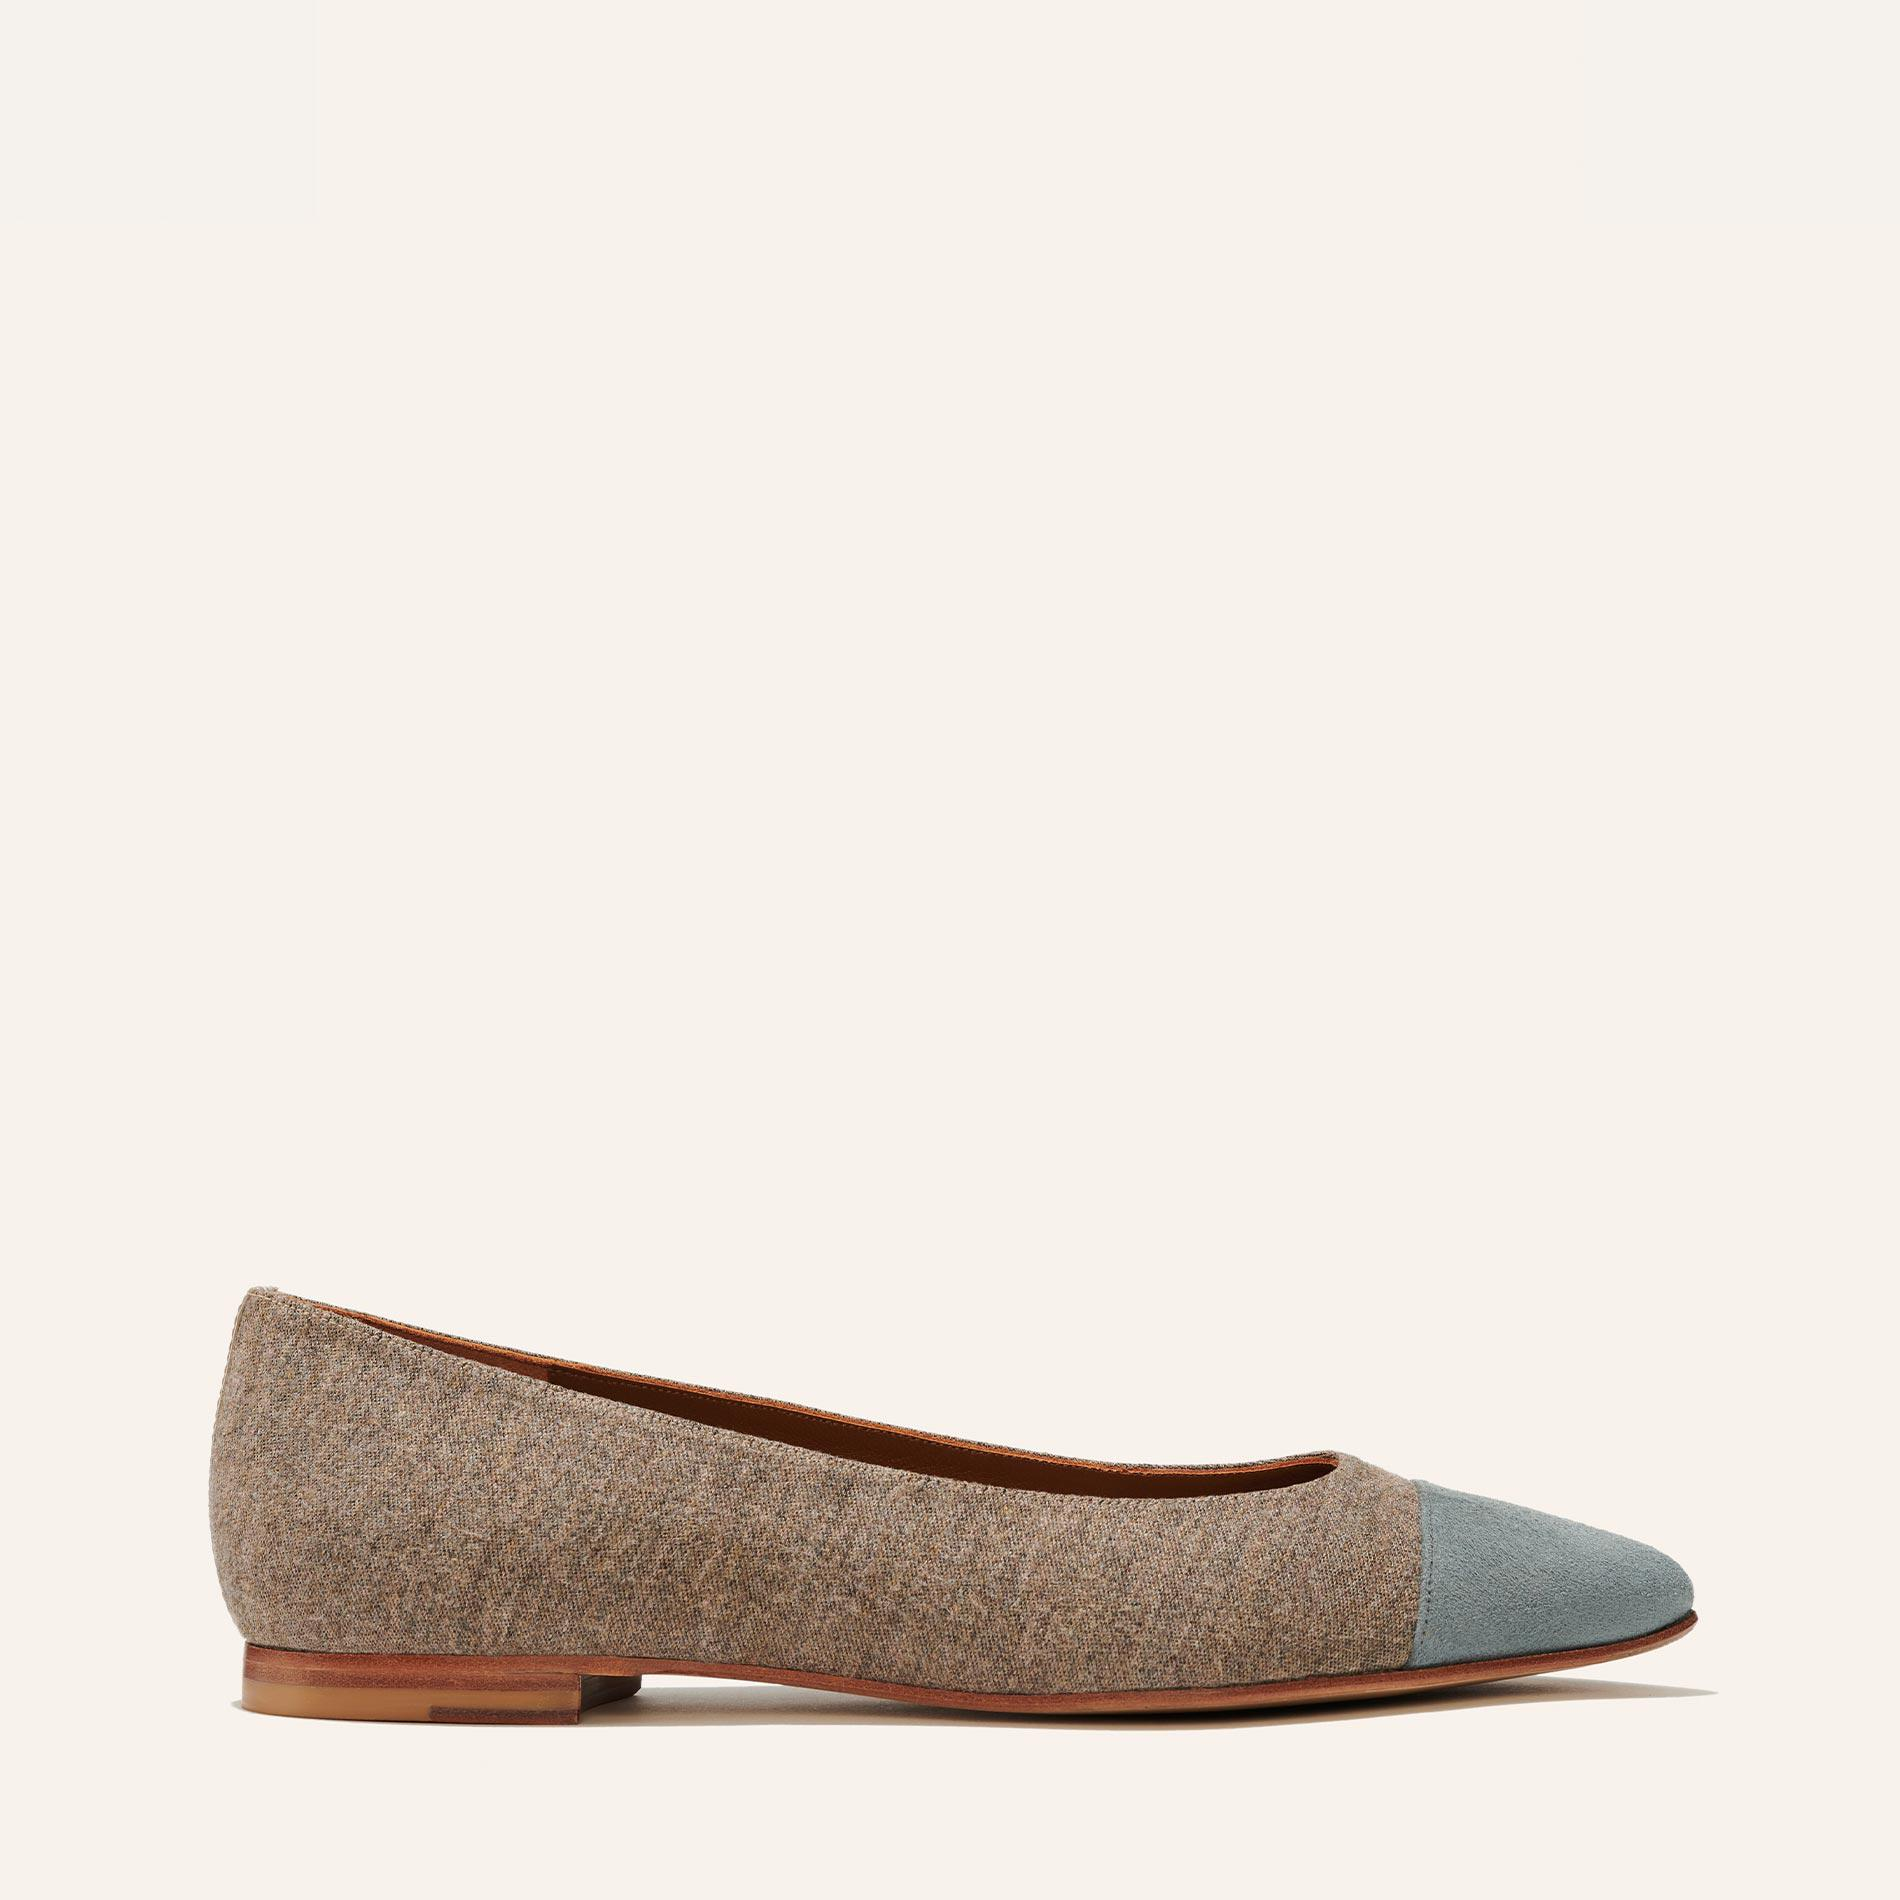 The Pointe - Taupe Captoe